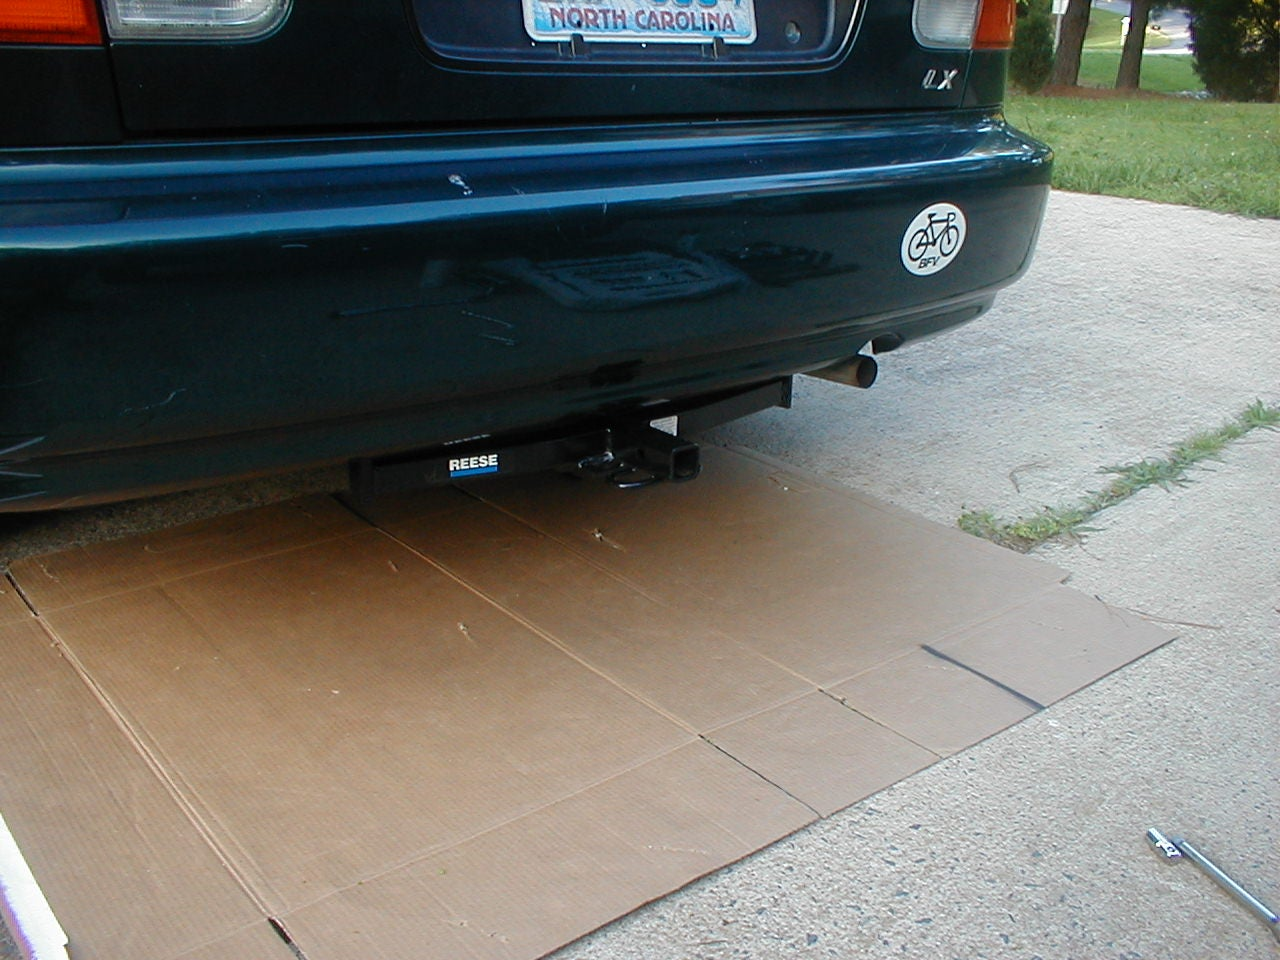 Installing a Trailer Hitch on a Small Car : 3 Steps (with Pictures) -  Instructables